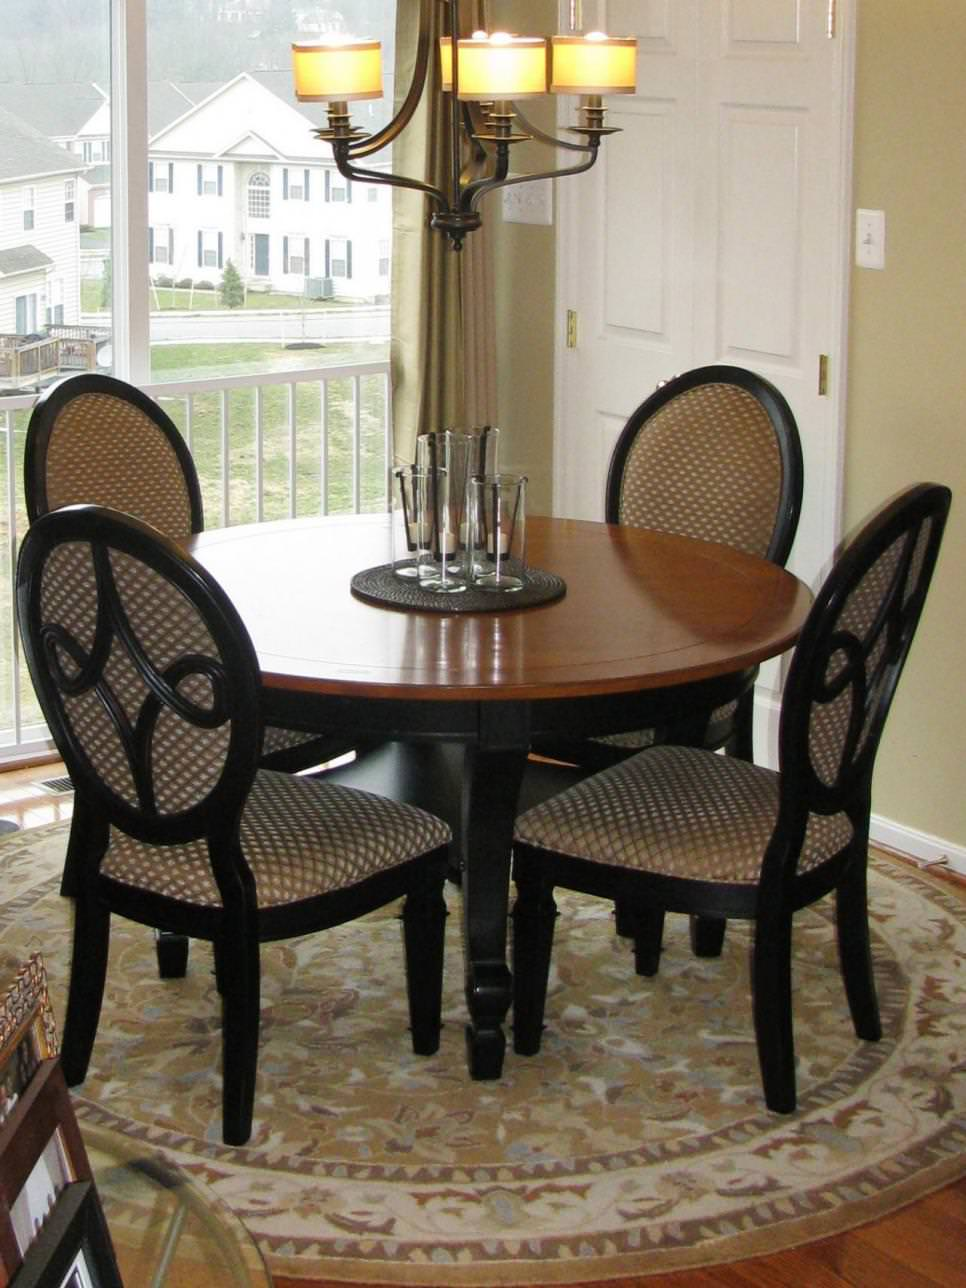 Dining Table Designs 23 Small Dining Table Designs Decorating Ideas Design Trends